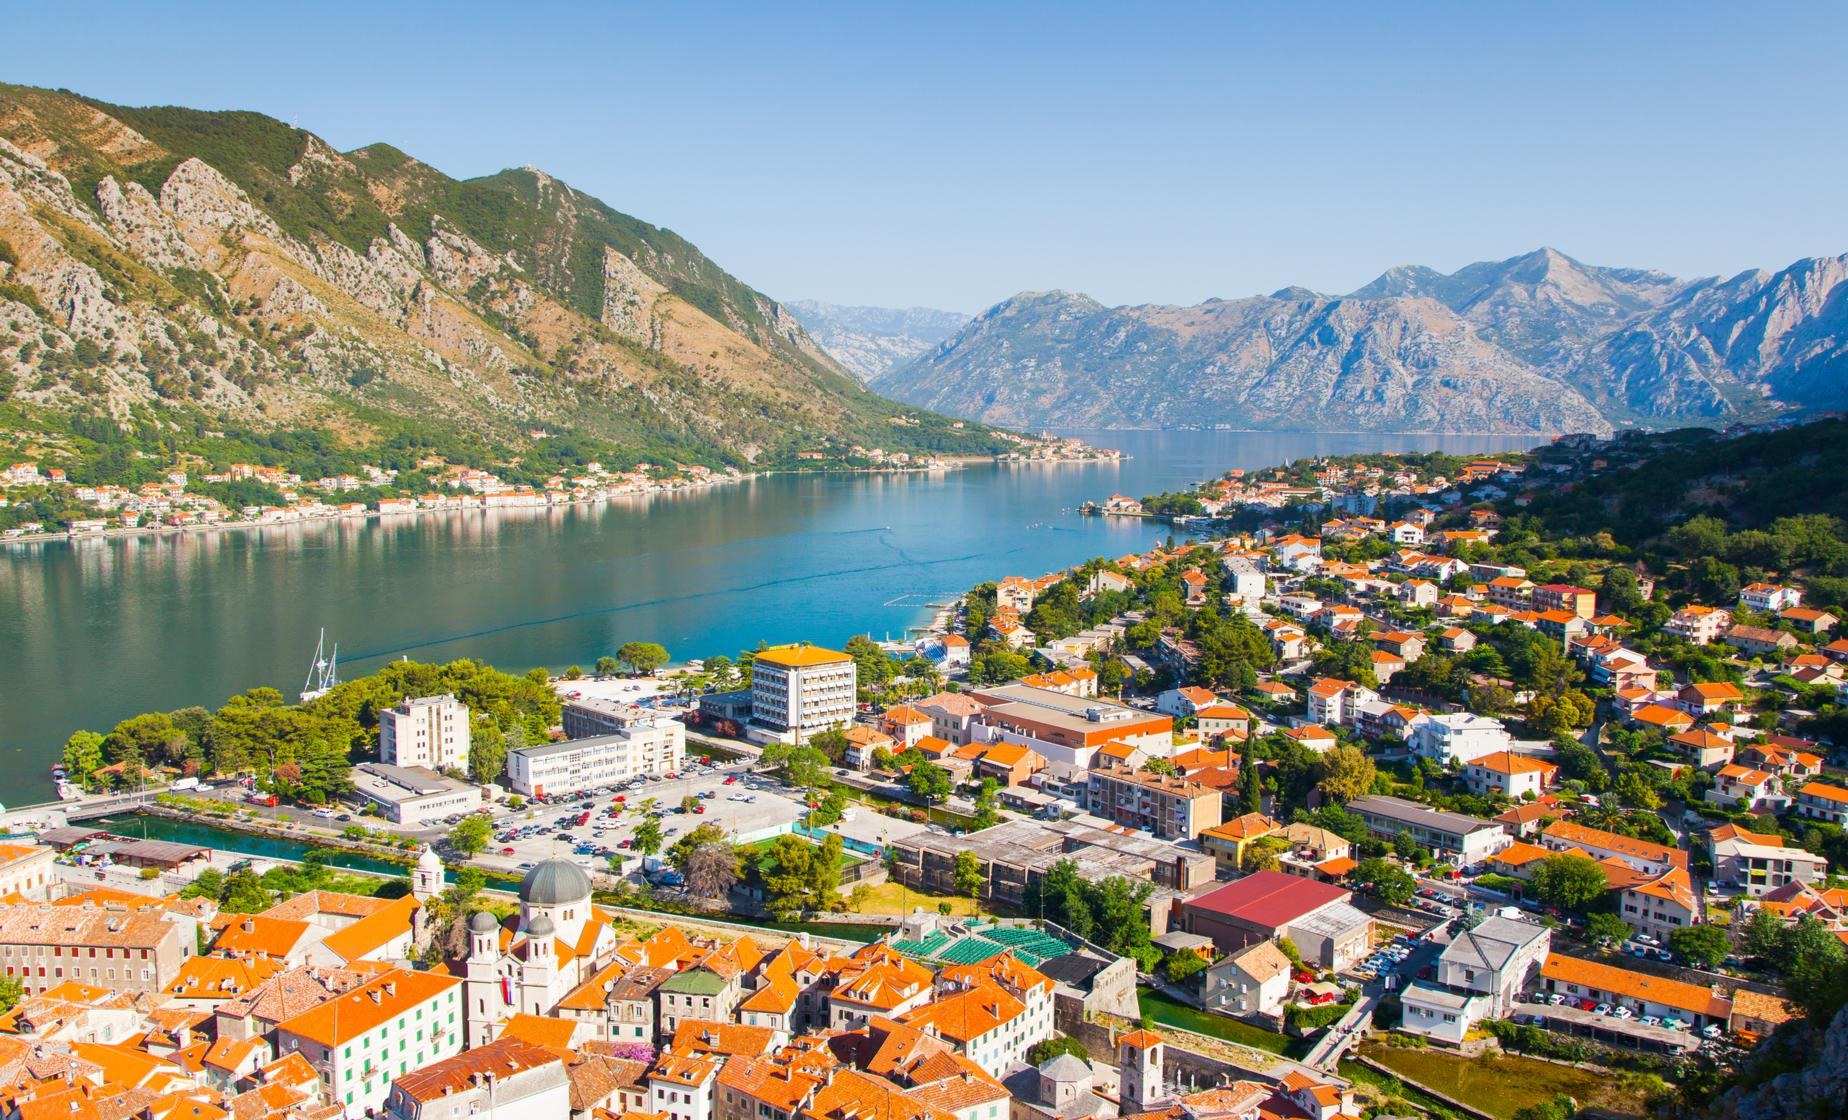 History of Kotor by Land